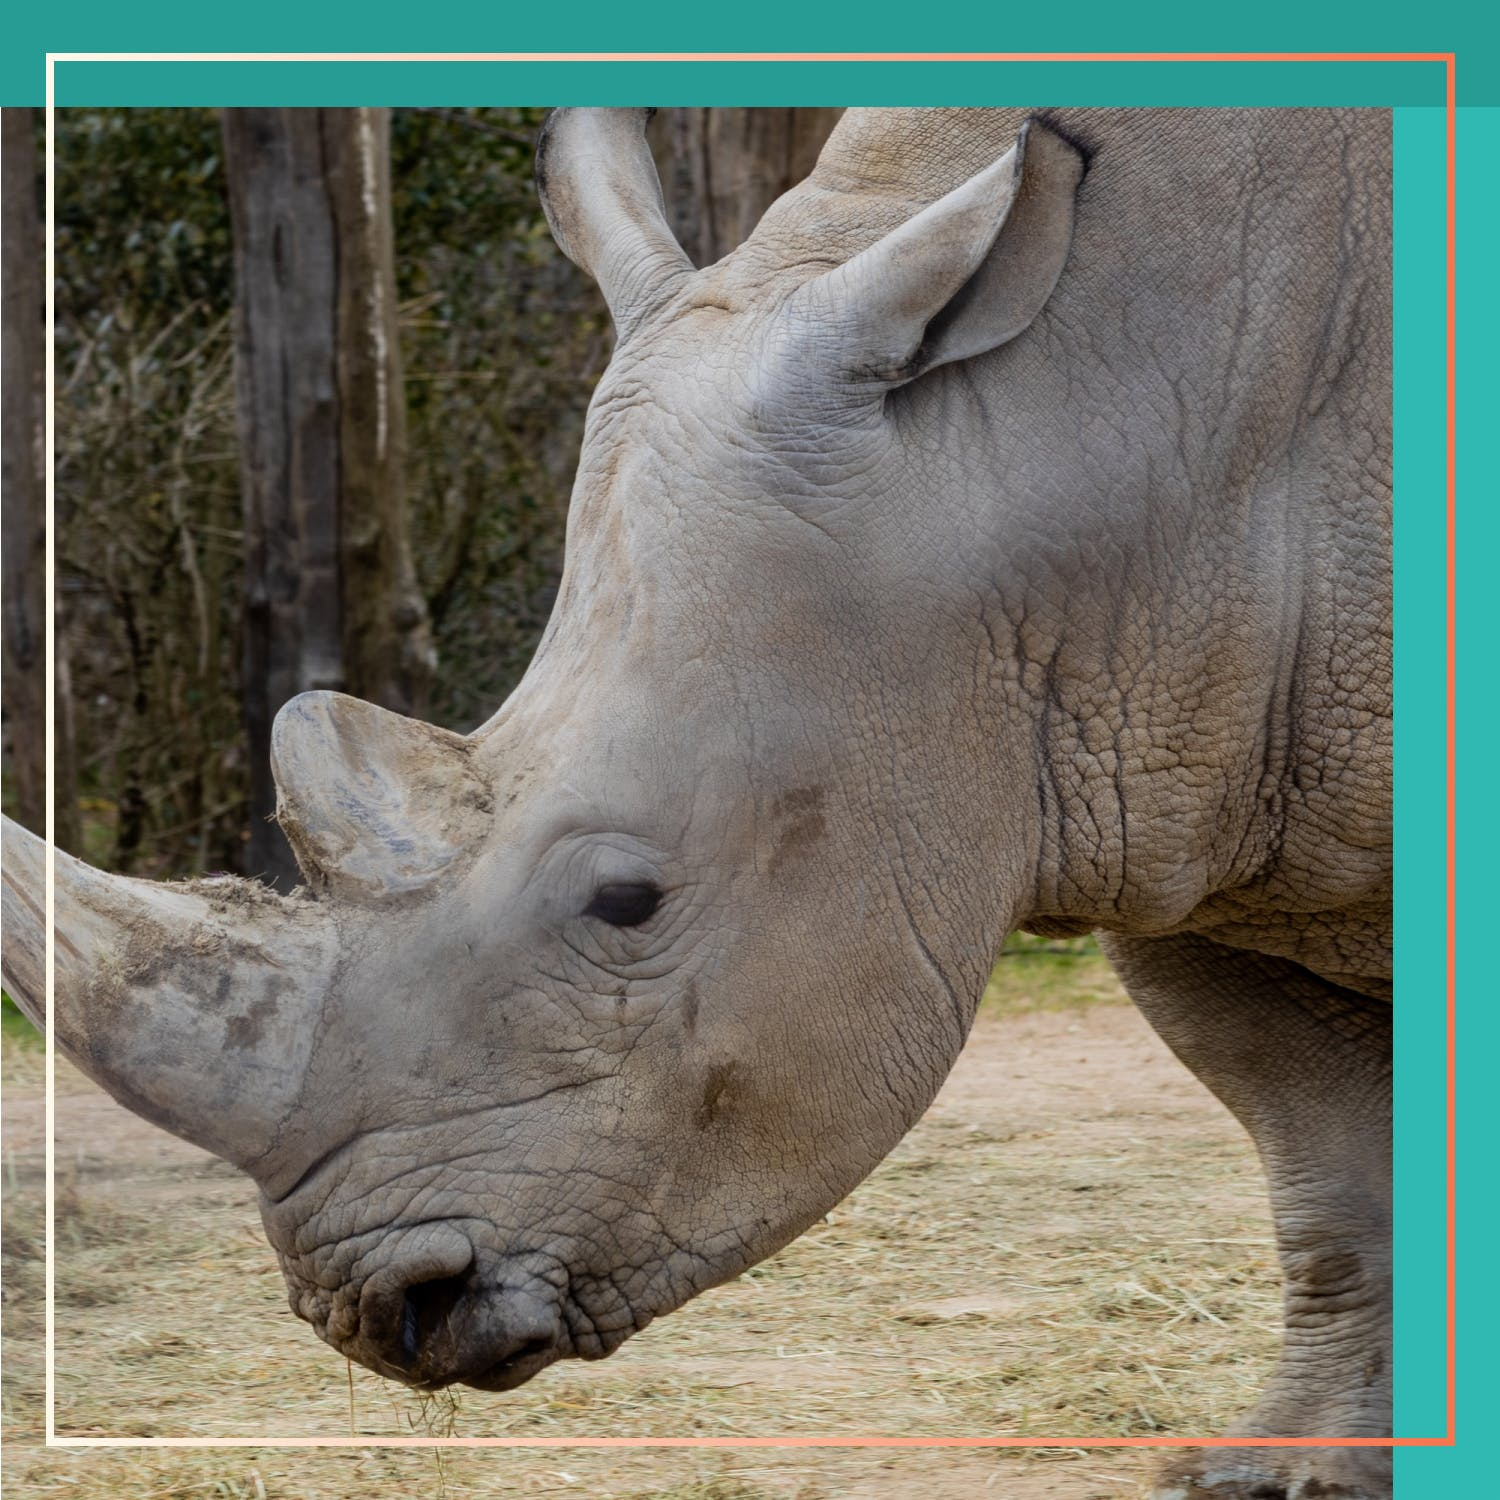 We Must Stop Poachers to Protect Wildlife